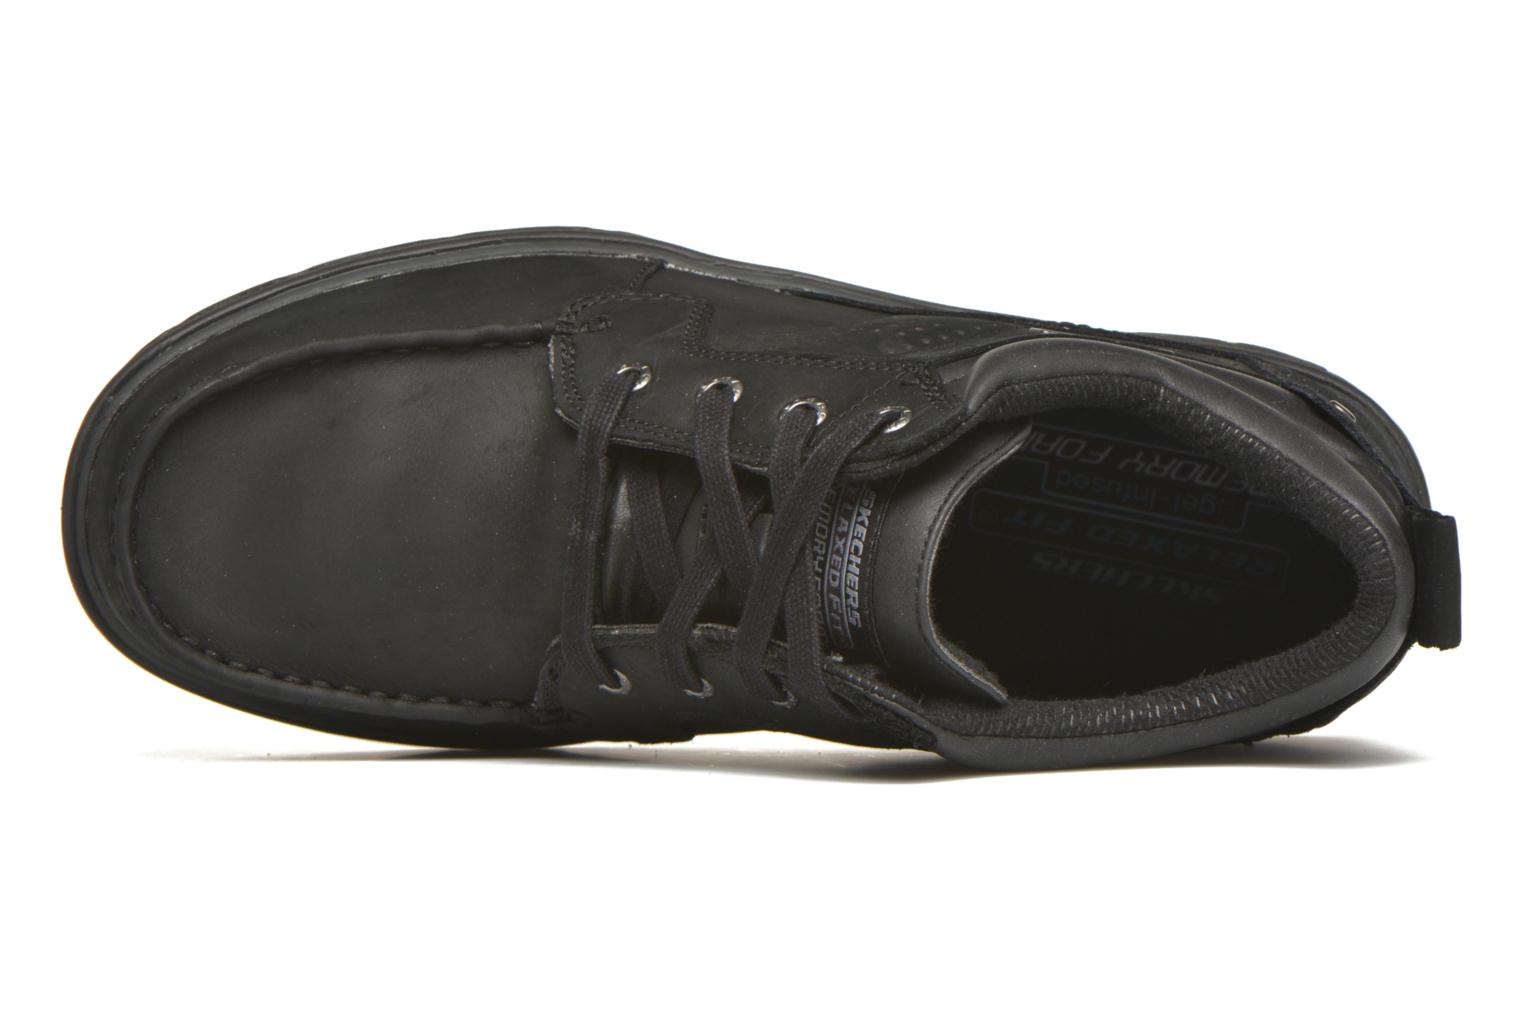 Lace-up shoes Skechers Segment Melego 64522 Black view from the left